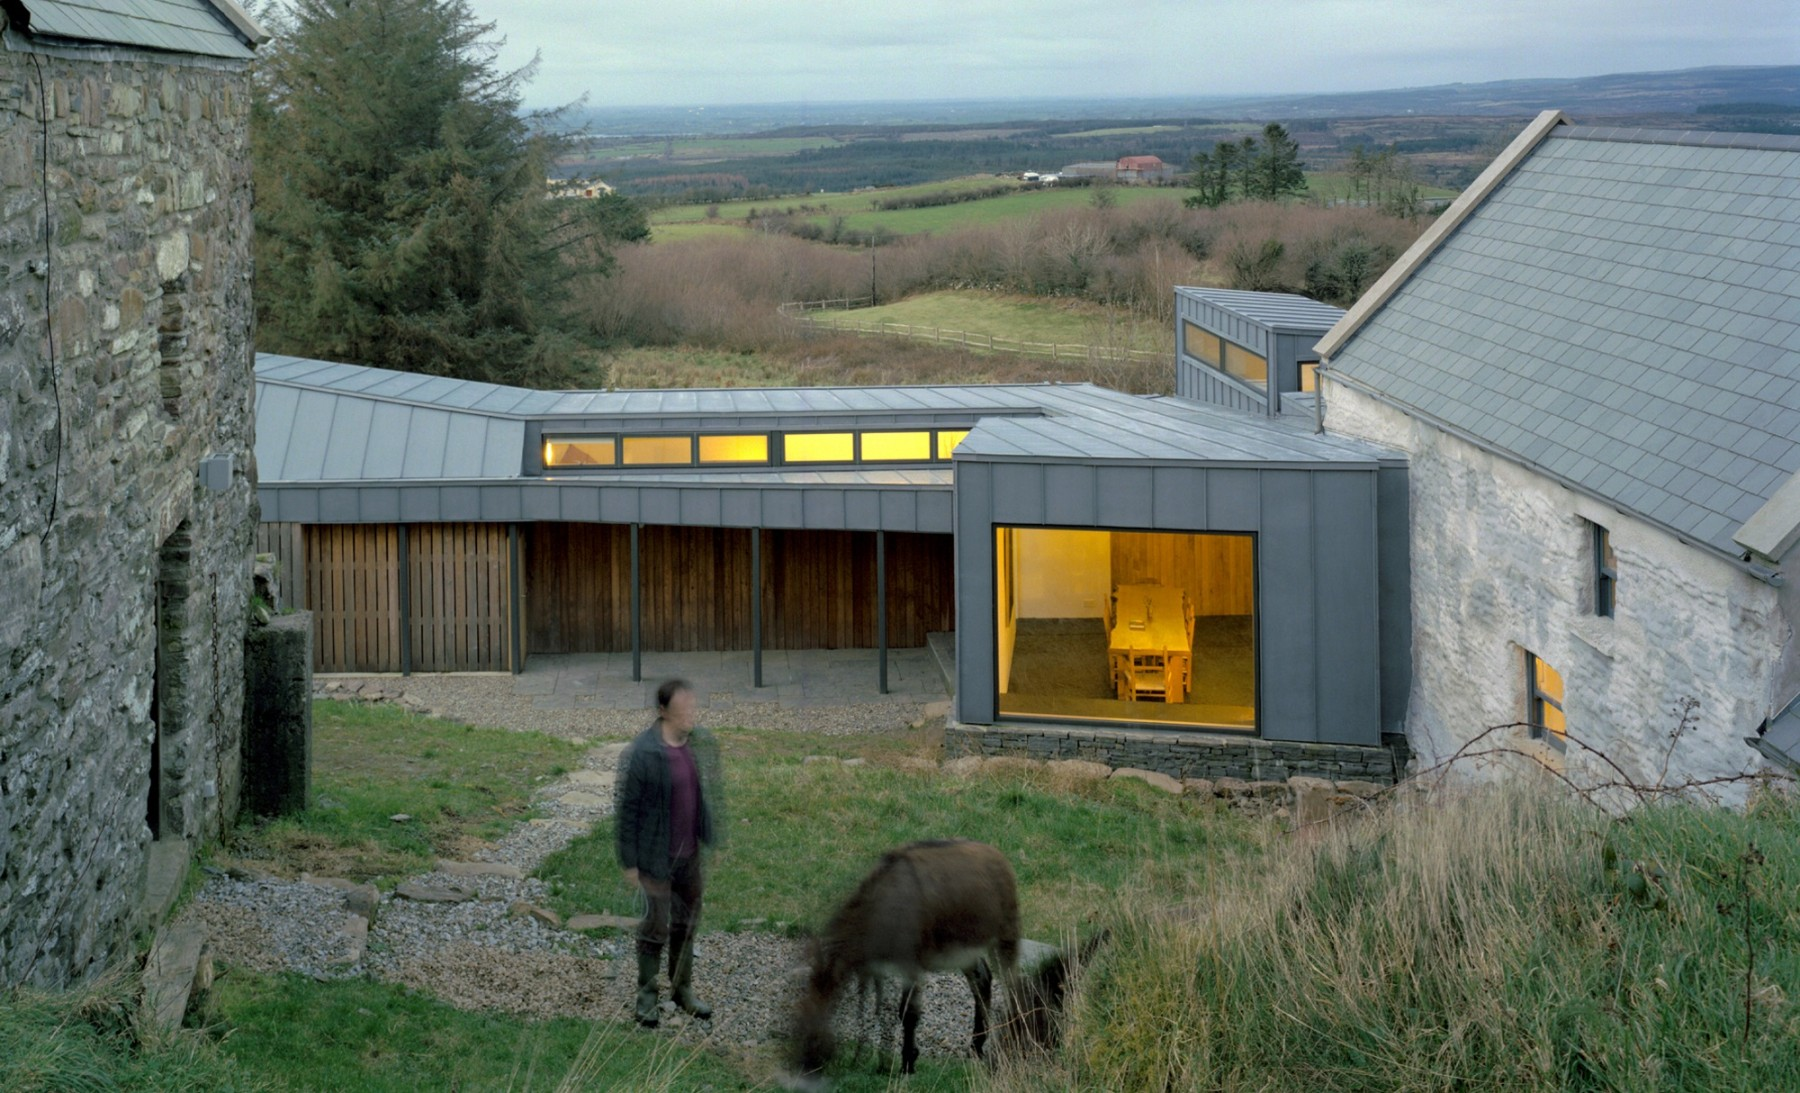 FaHa-Farm-house-barn-County-Clare-Ireland-residential-home-rural-timber-zinc-Jamie-Fobert-Architects-homepage-1